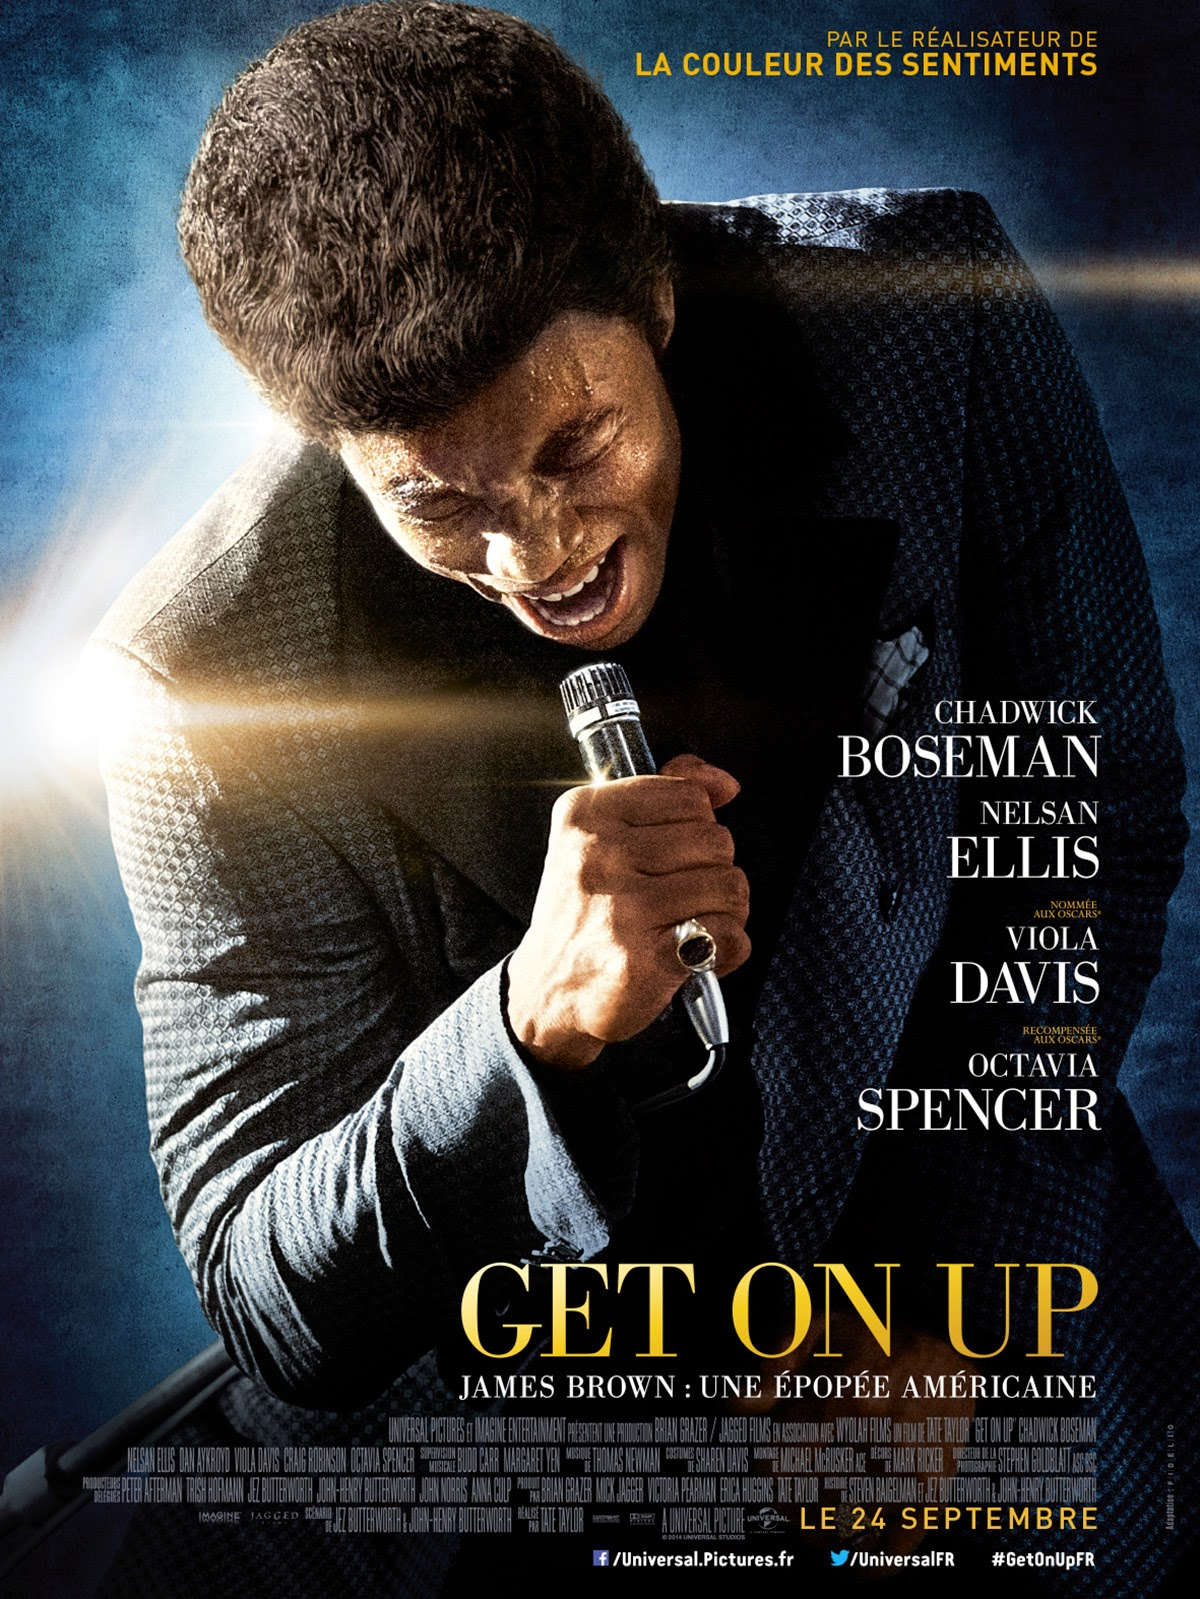 http://fuckingcinephiles.blogspot.fr/2014/09/critique-get-on-up.html